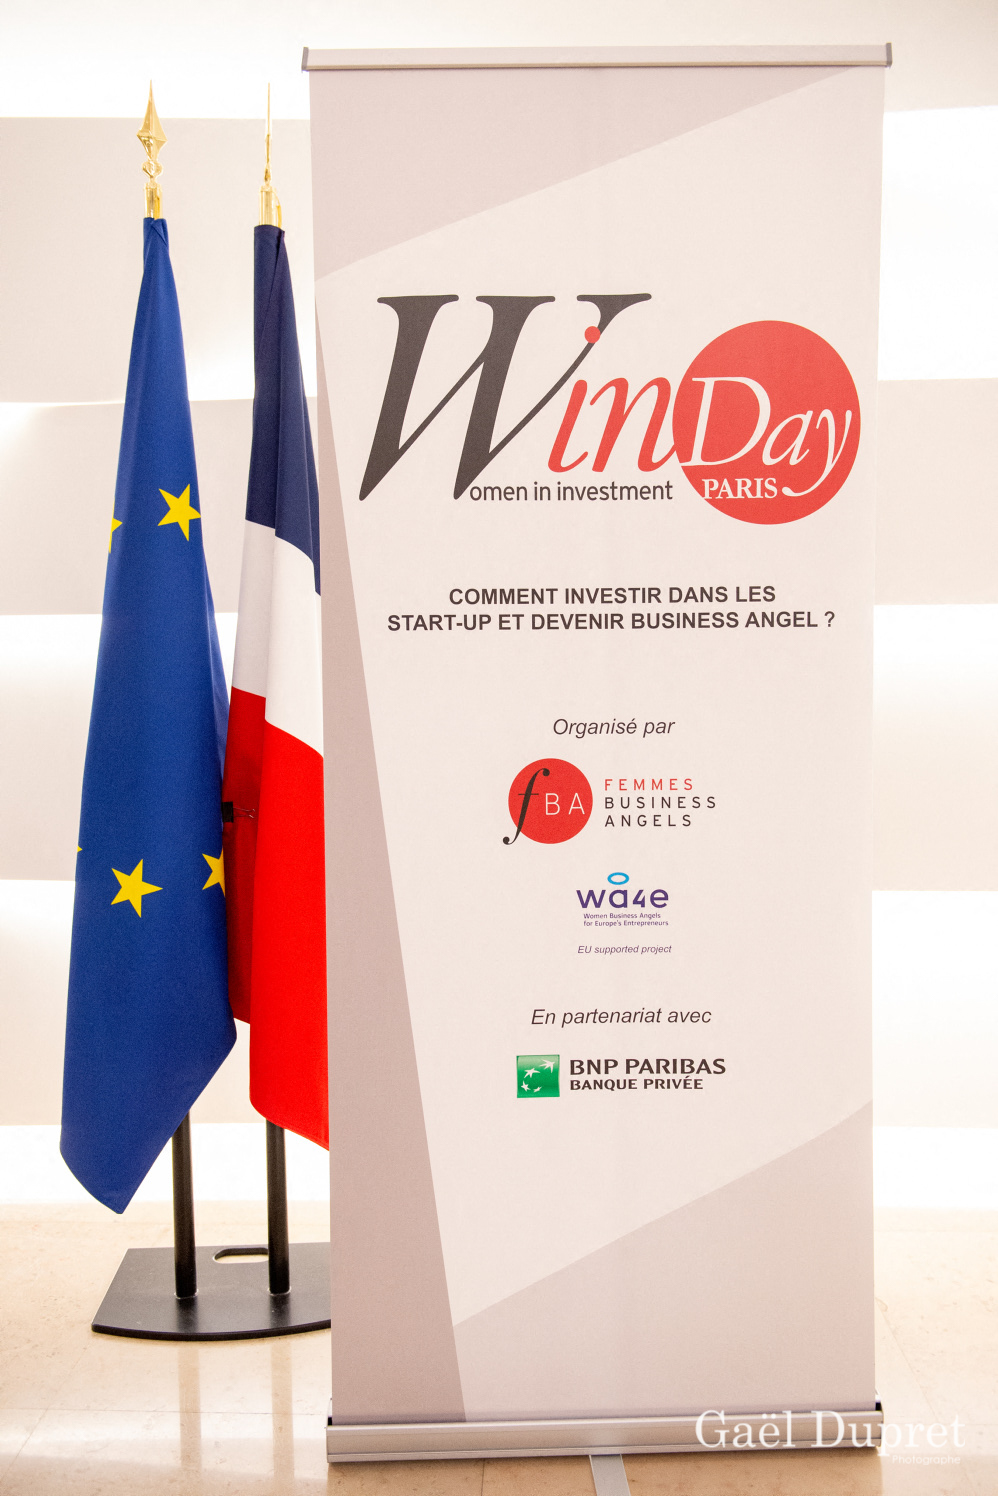 ©Gaël Dupret, France, Paris le 2018-11-15 : 2ème édition des WINDAY Paris par FBA - Femmes Business Angels. Photo : WinDay Paris par FBA - Femmes Business Angel avec les drapeaux européen et français.    WinDay Paris by FBA - Business Angel Women with European and French Flags.